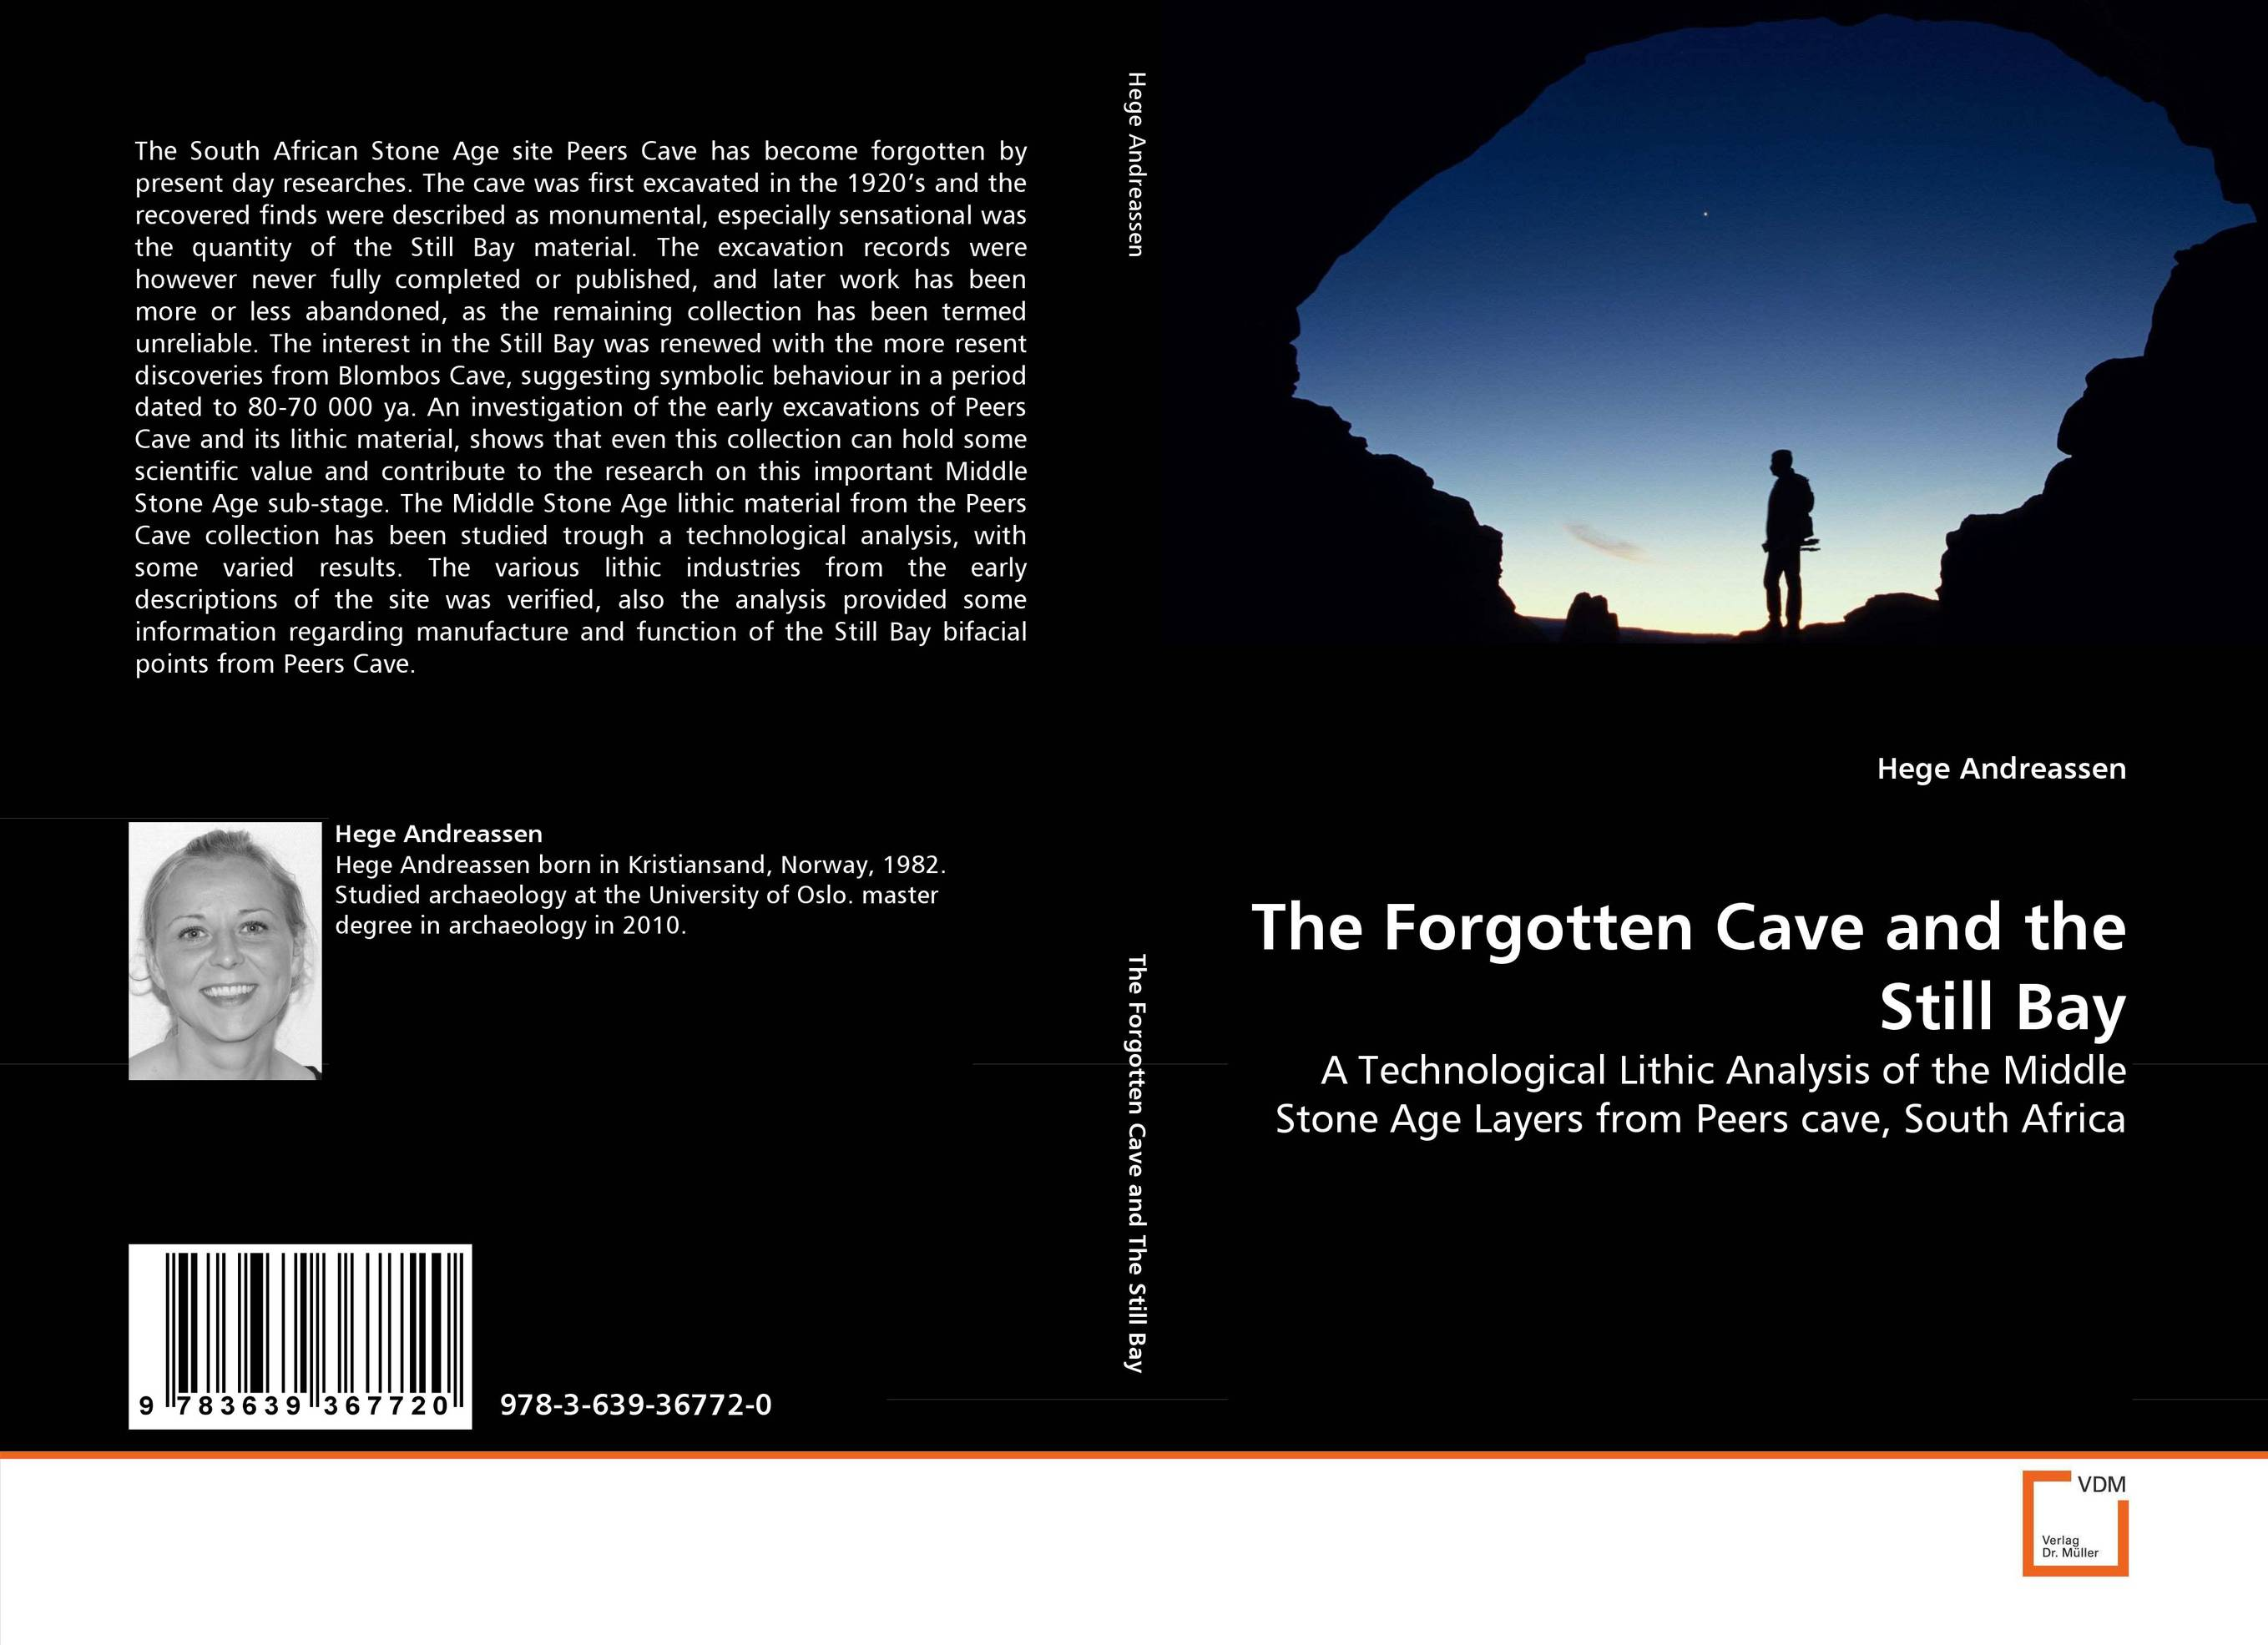 The Forgotten Cave and the Still Bay